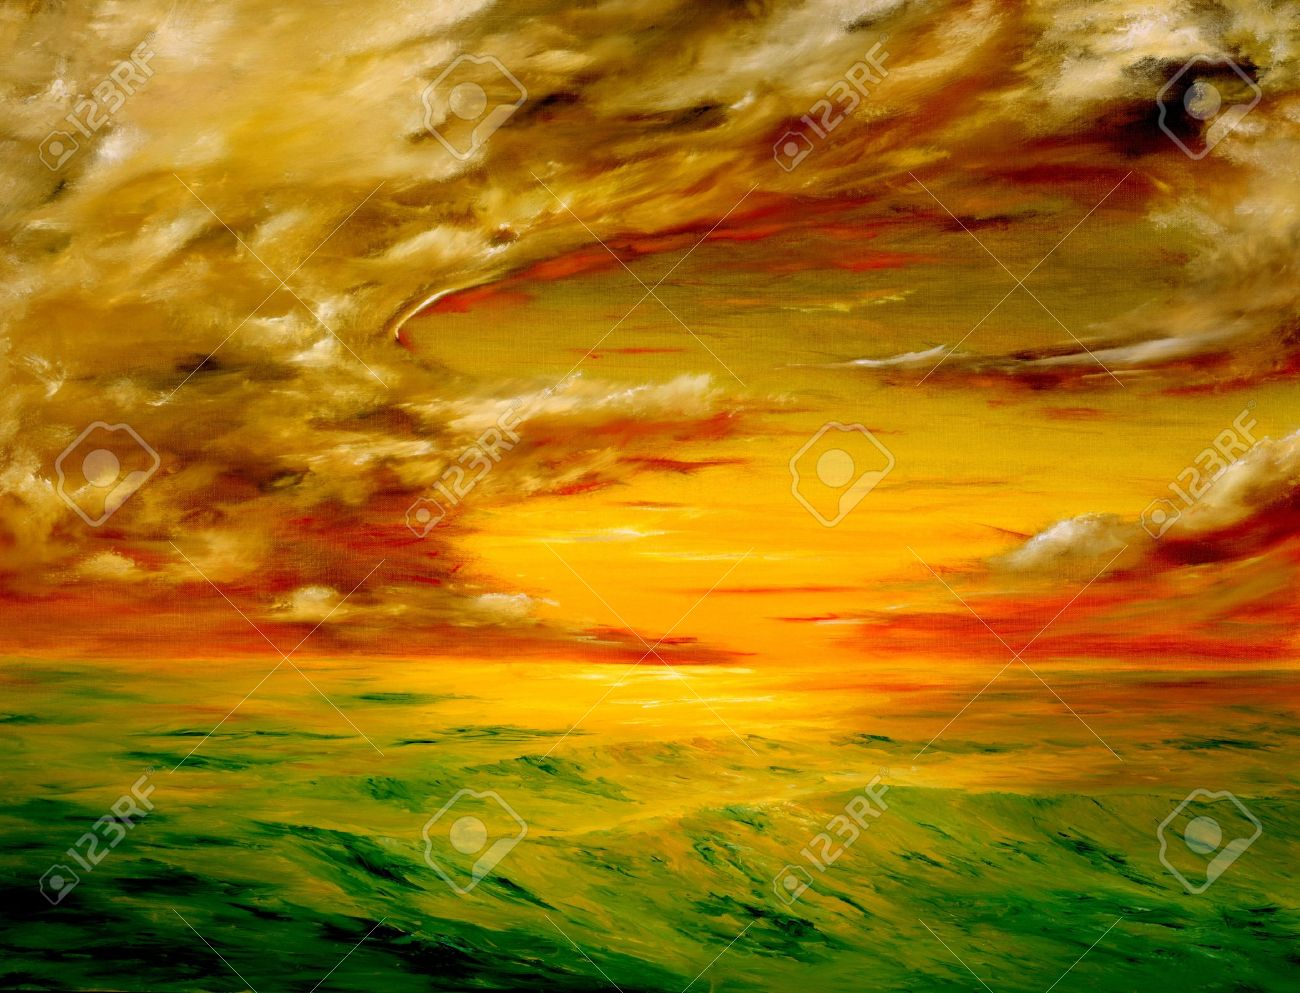 original oil painting of the Beautiful sunset off the coast of california Stock Photo - 10948503